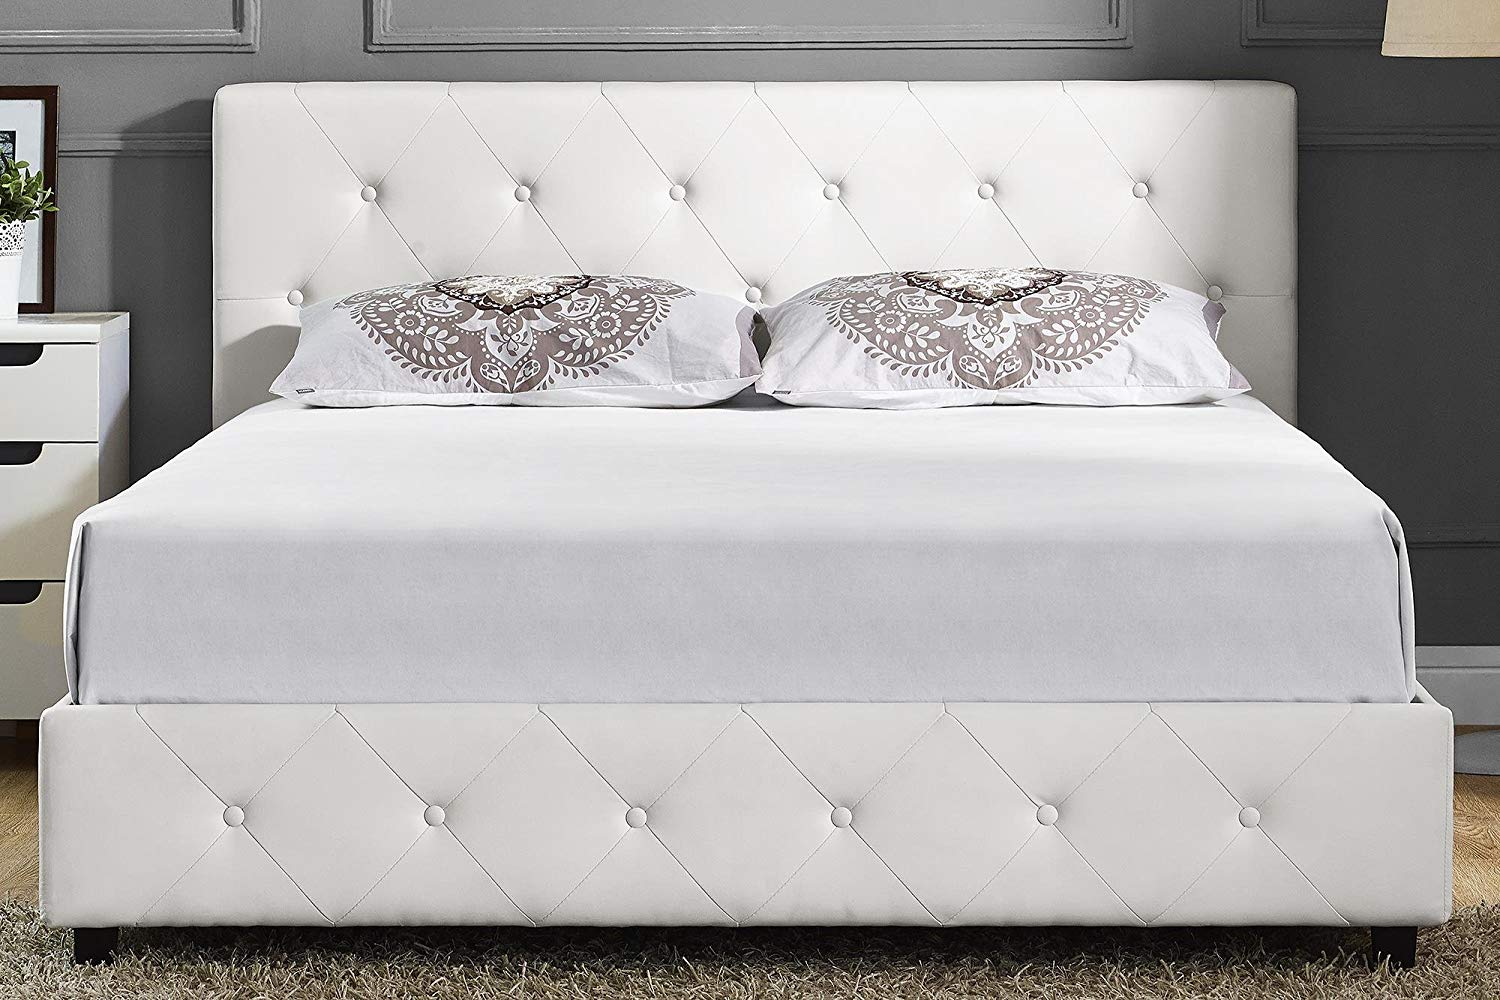 DHP Leather Platform Bed beautiful looks